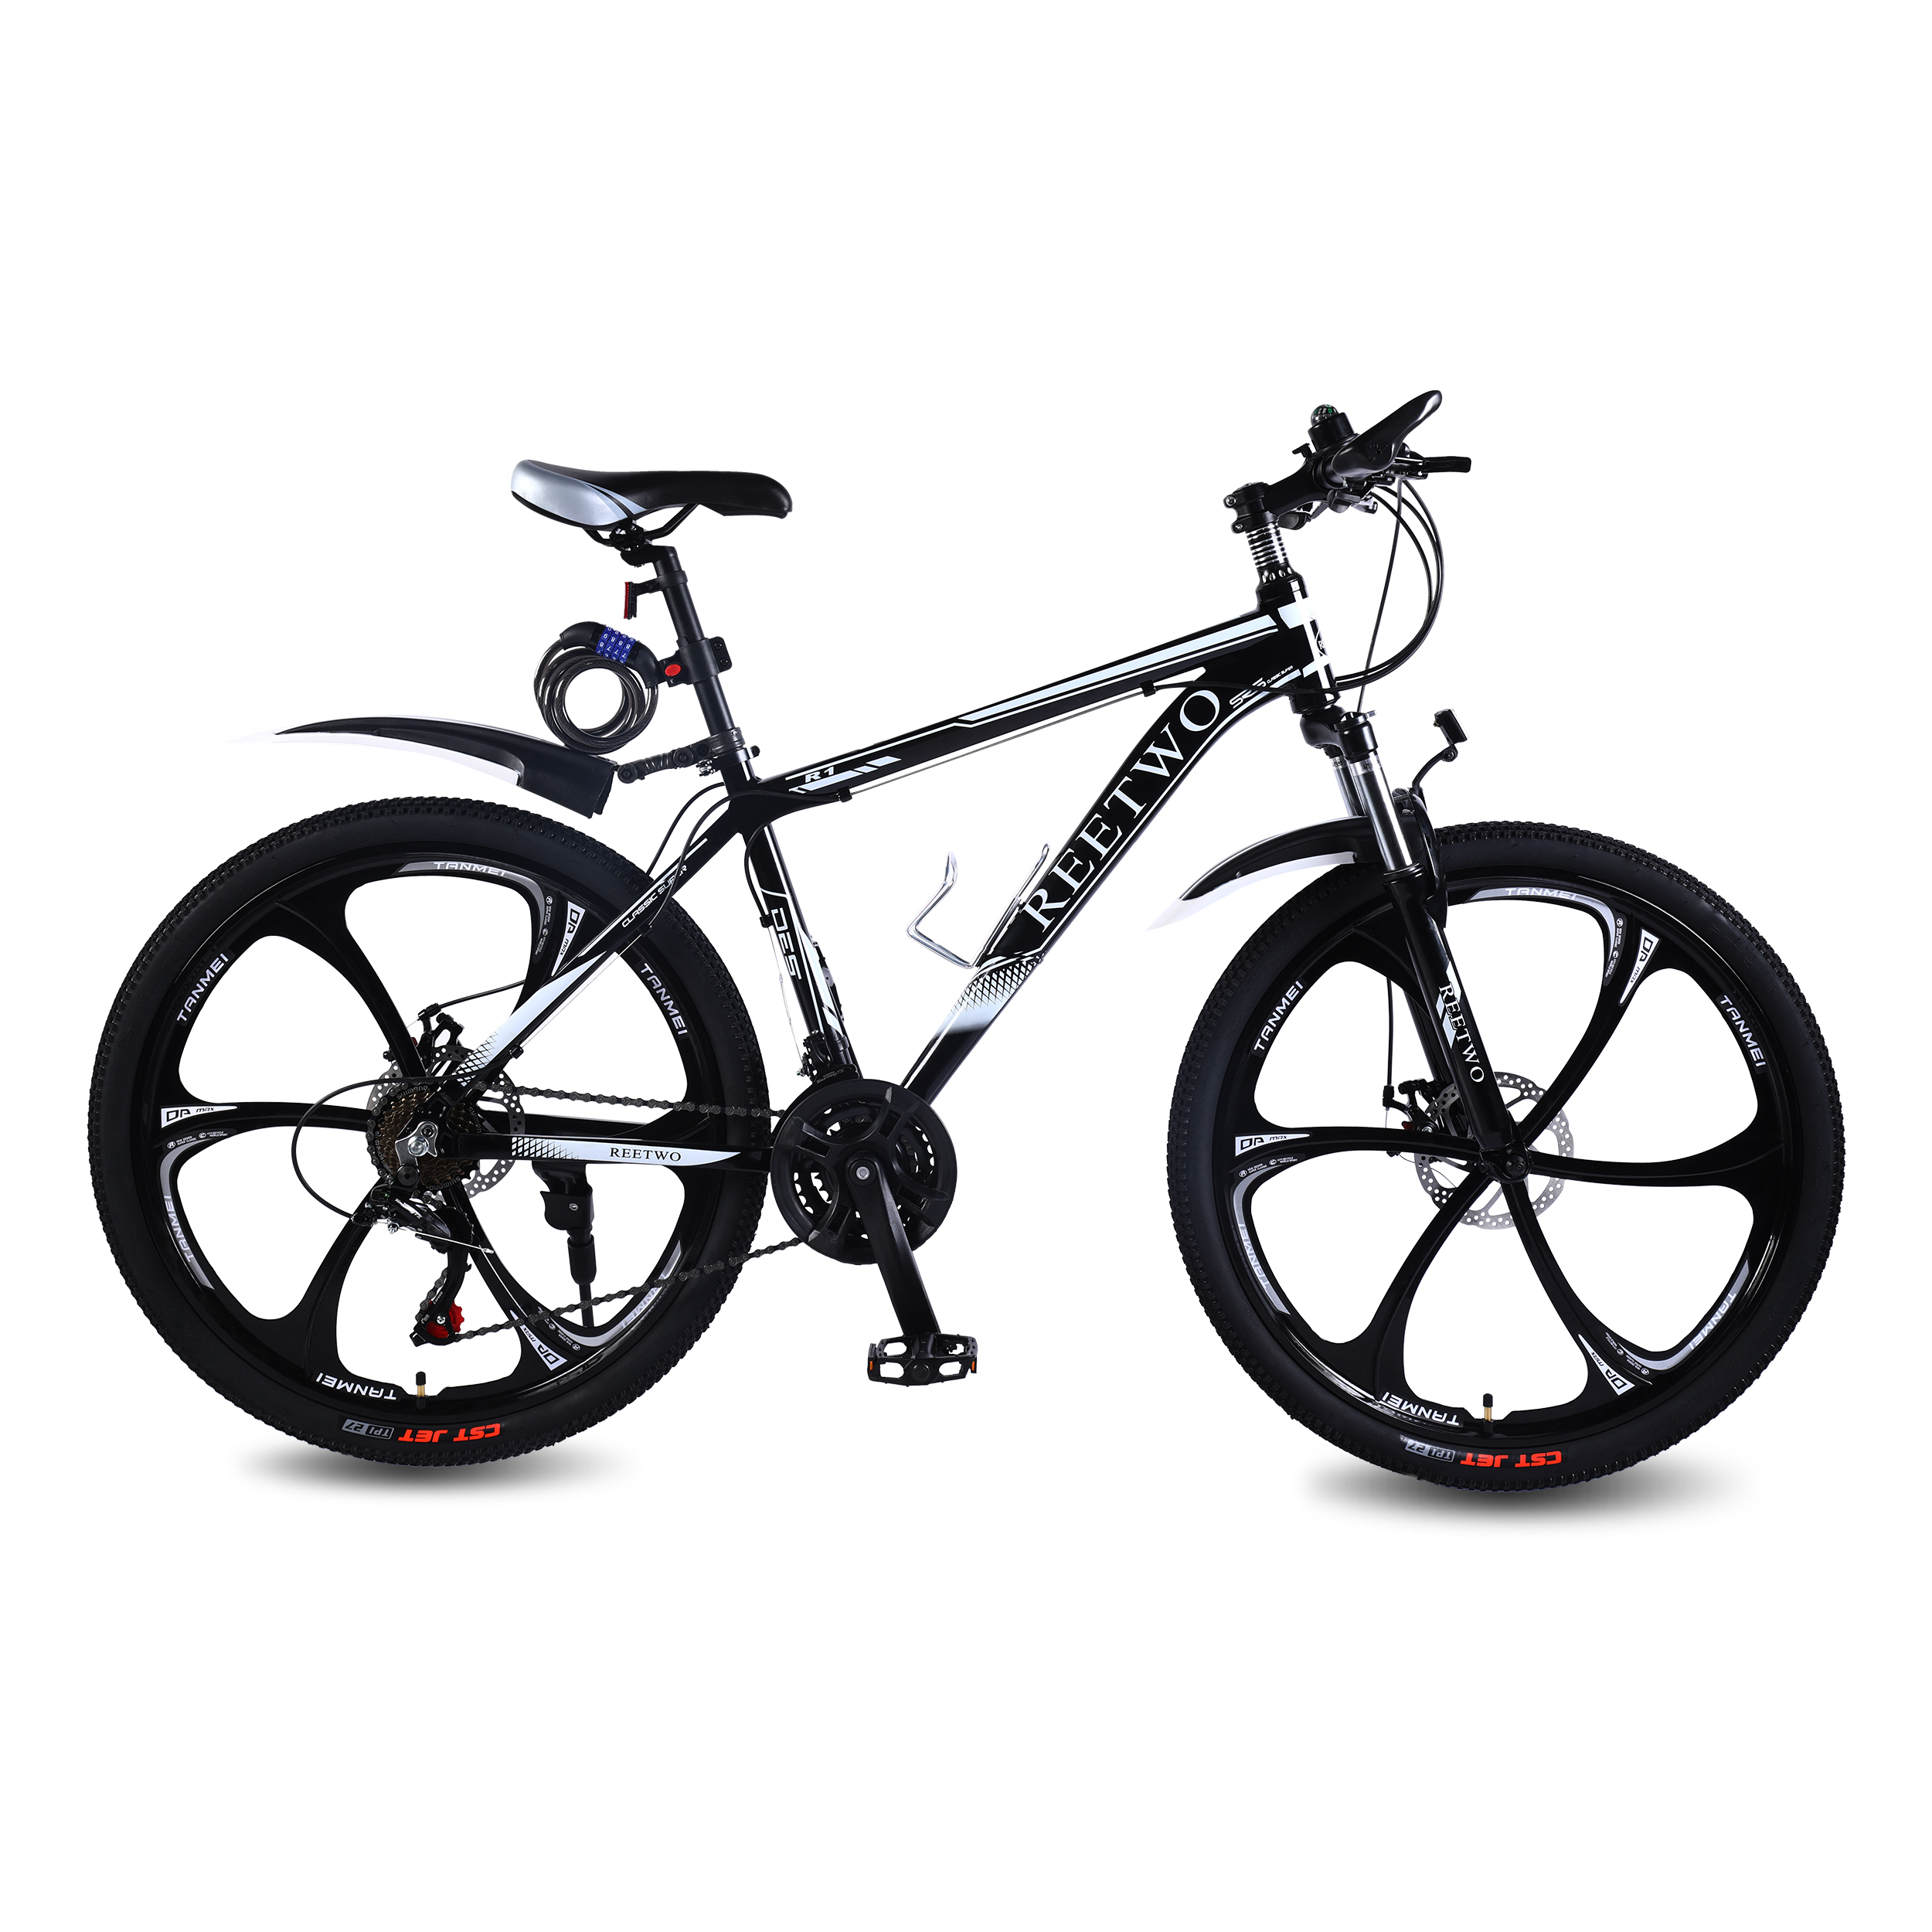 REETWO R1 26 Inches Mountain Bike 21 Speed Mountain Bicycle For Men And Women, MTB Disc Brakes With Aluminum Frame Riding Bike